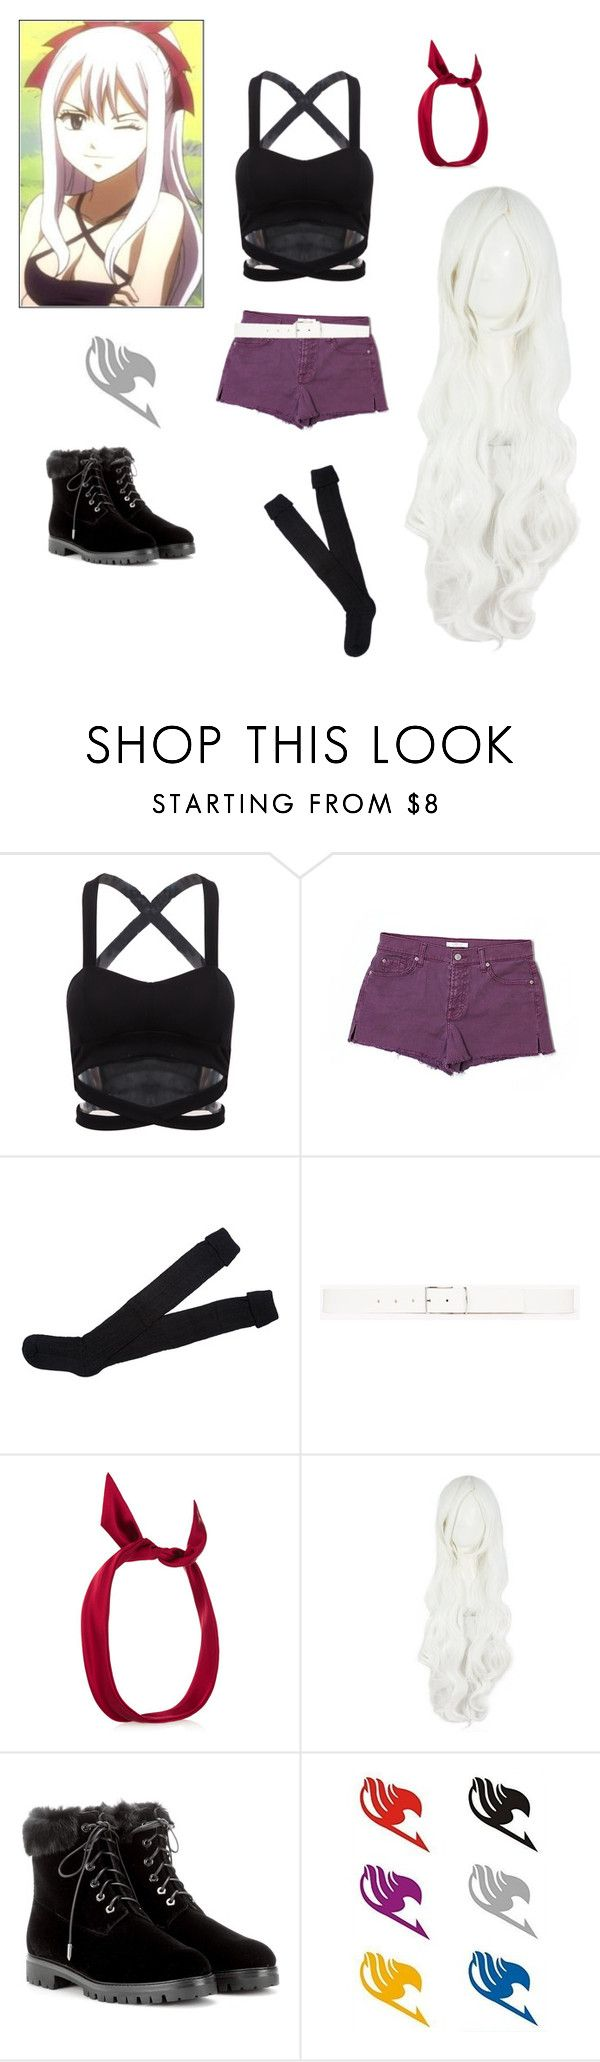 """Mirajane:Fairy Tail"" by angle12345 ❤ liked on Polyvore featuring 7 For All Mankind, Theory, yunotme and Aquazzura"